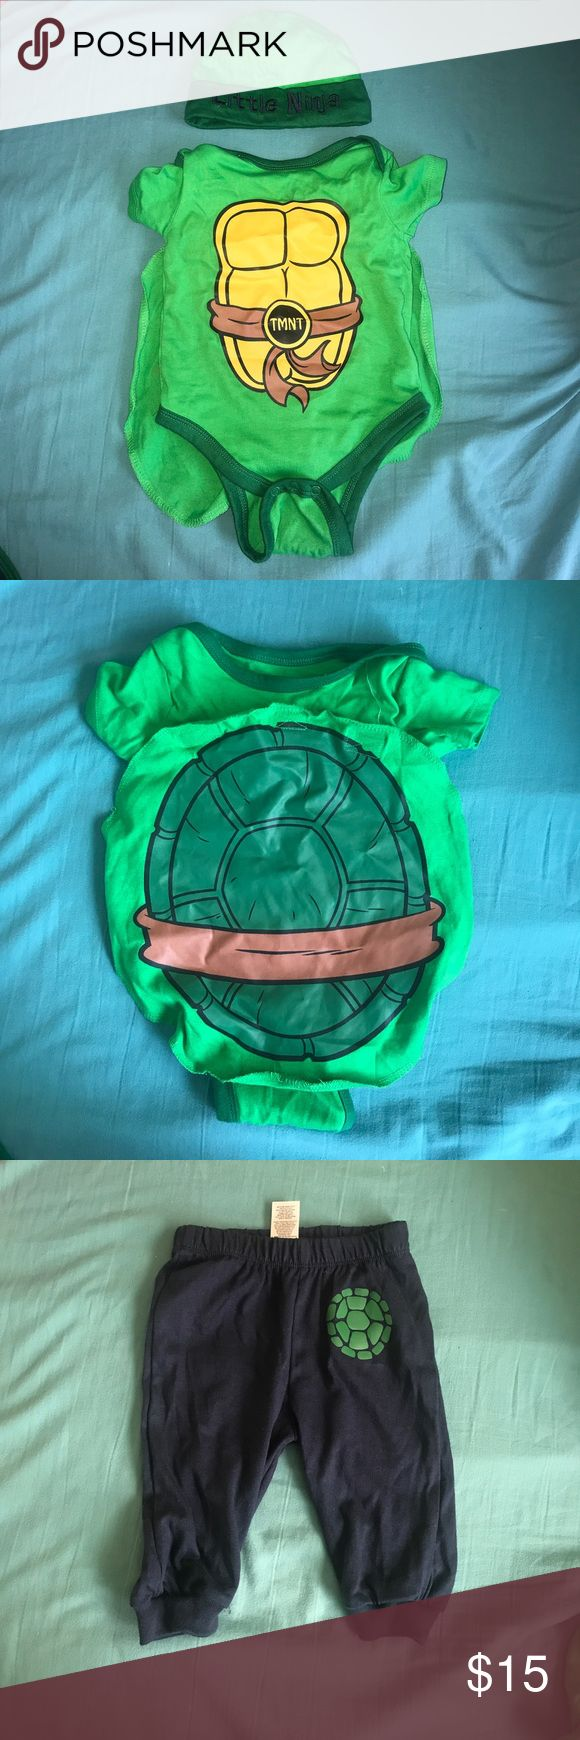 🔆TEENAGE MUTUANT NINJA TURTLE ONESIE OUFIT🔆 EXCELLENT CONDITION!! GREAT FOR HALLOWEEN OR PARTY THEME! CAPE IS DETATCHABLE WITH VELCRO. ONLY USED ONCE, NO STAINS! PANTS, BIB NEVER BEEN WORN. Nickelodeon Costumes Superhero